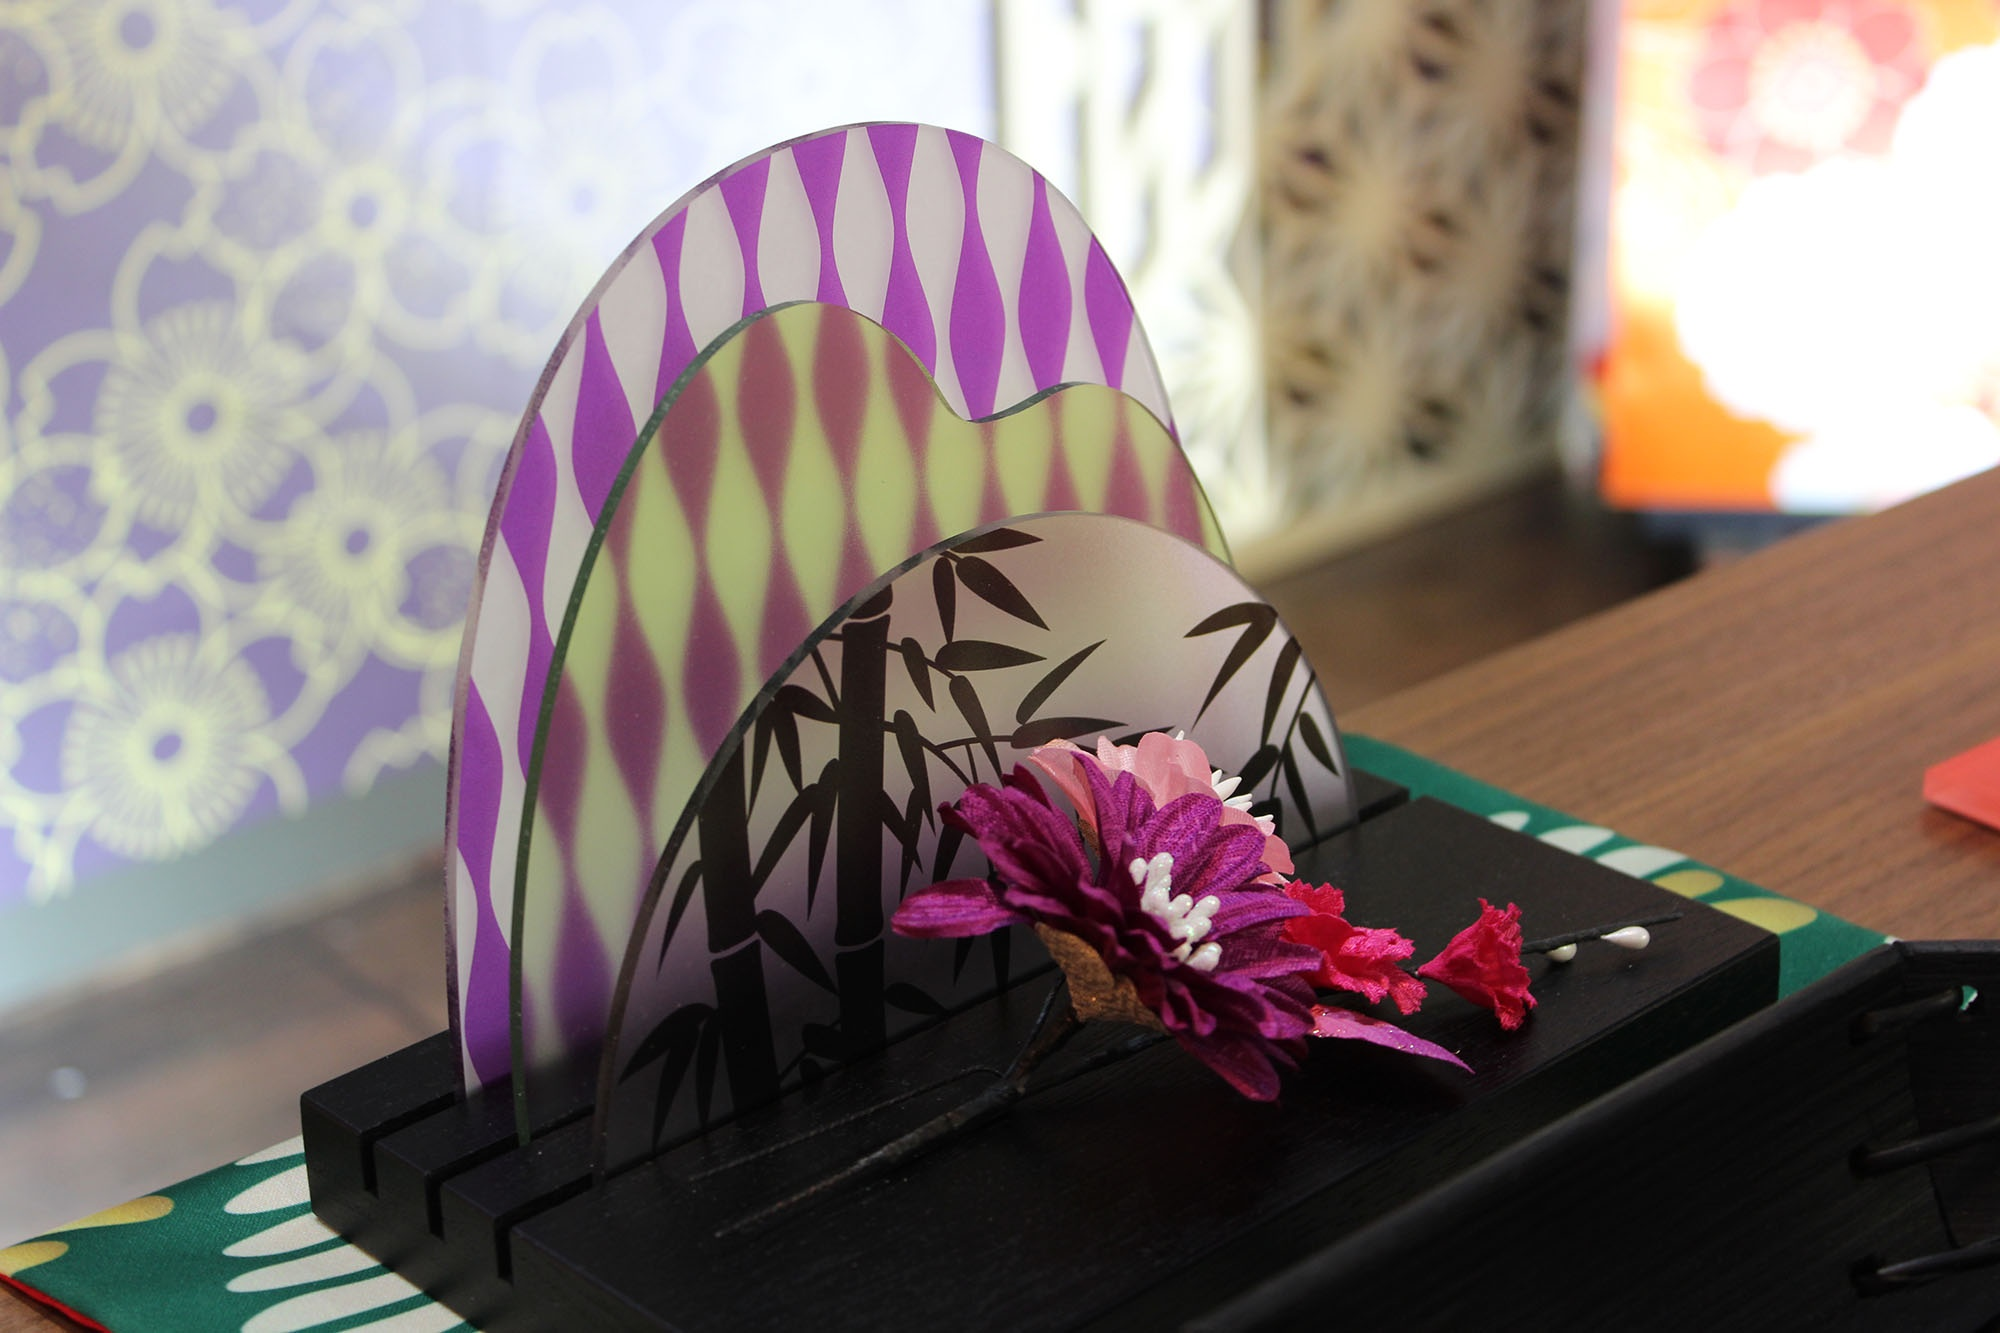 Table decorative object